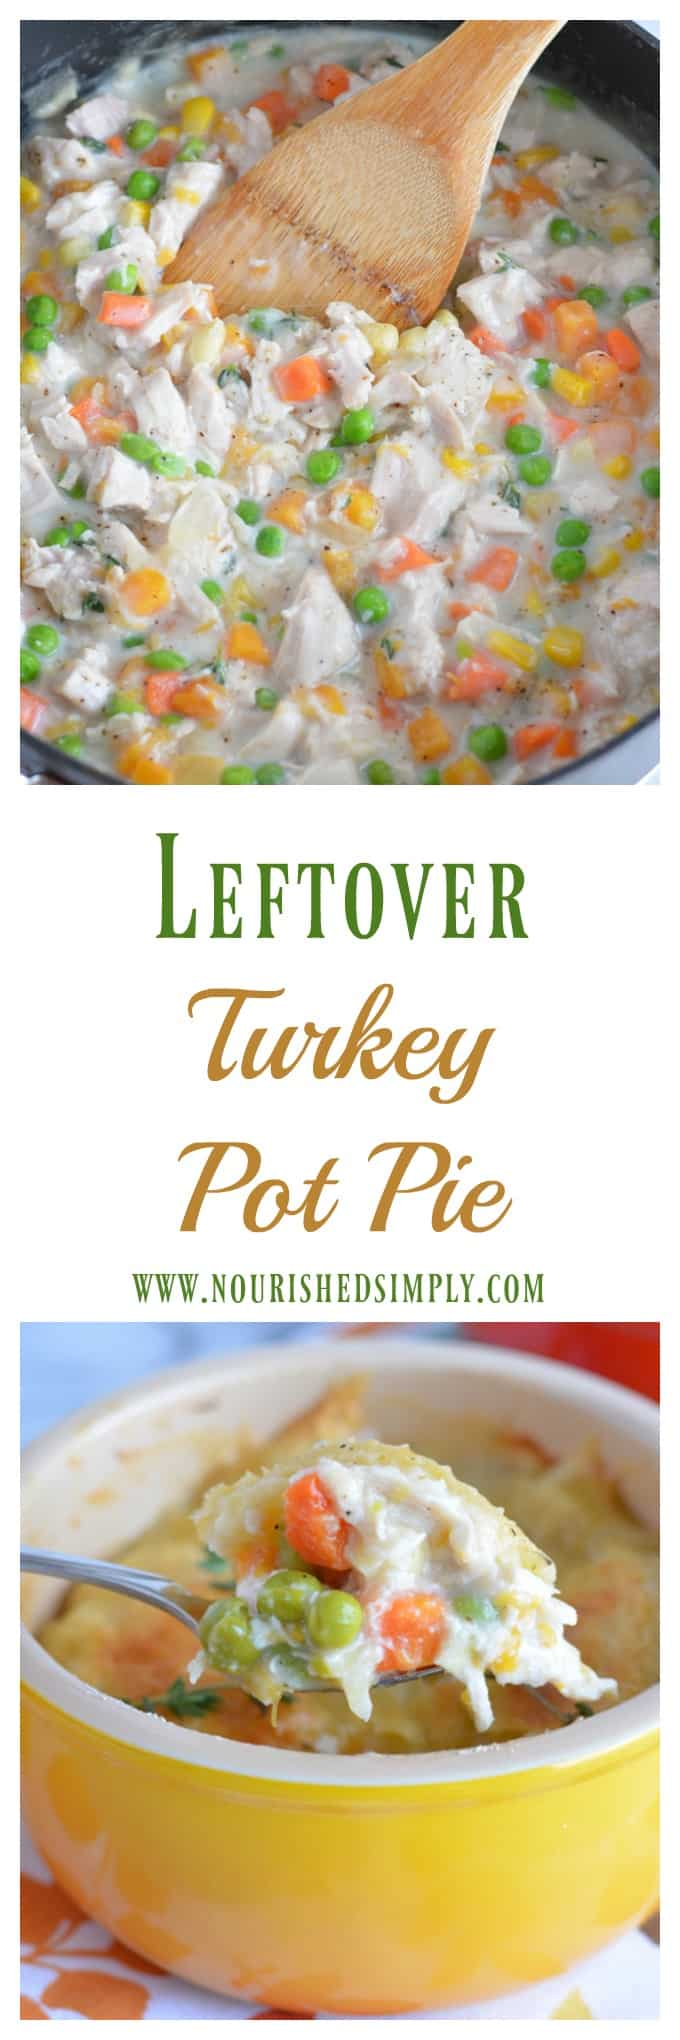 Use up leftover turkey in this quick and easy turkey pot pie recipe. It's loaded with veggies that you can grab right from your freezer. Don't let Thanksgiving leftovers go to waste! #thanksgiving